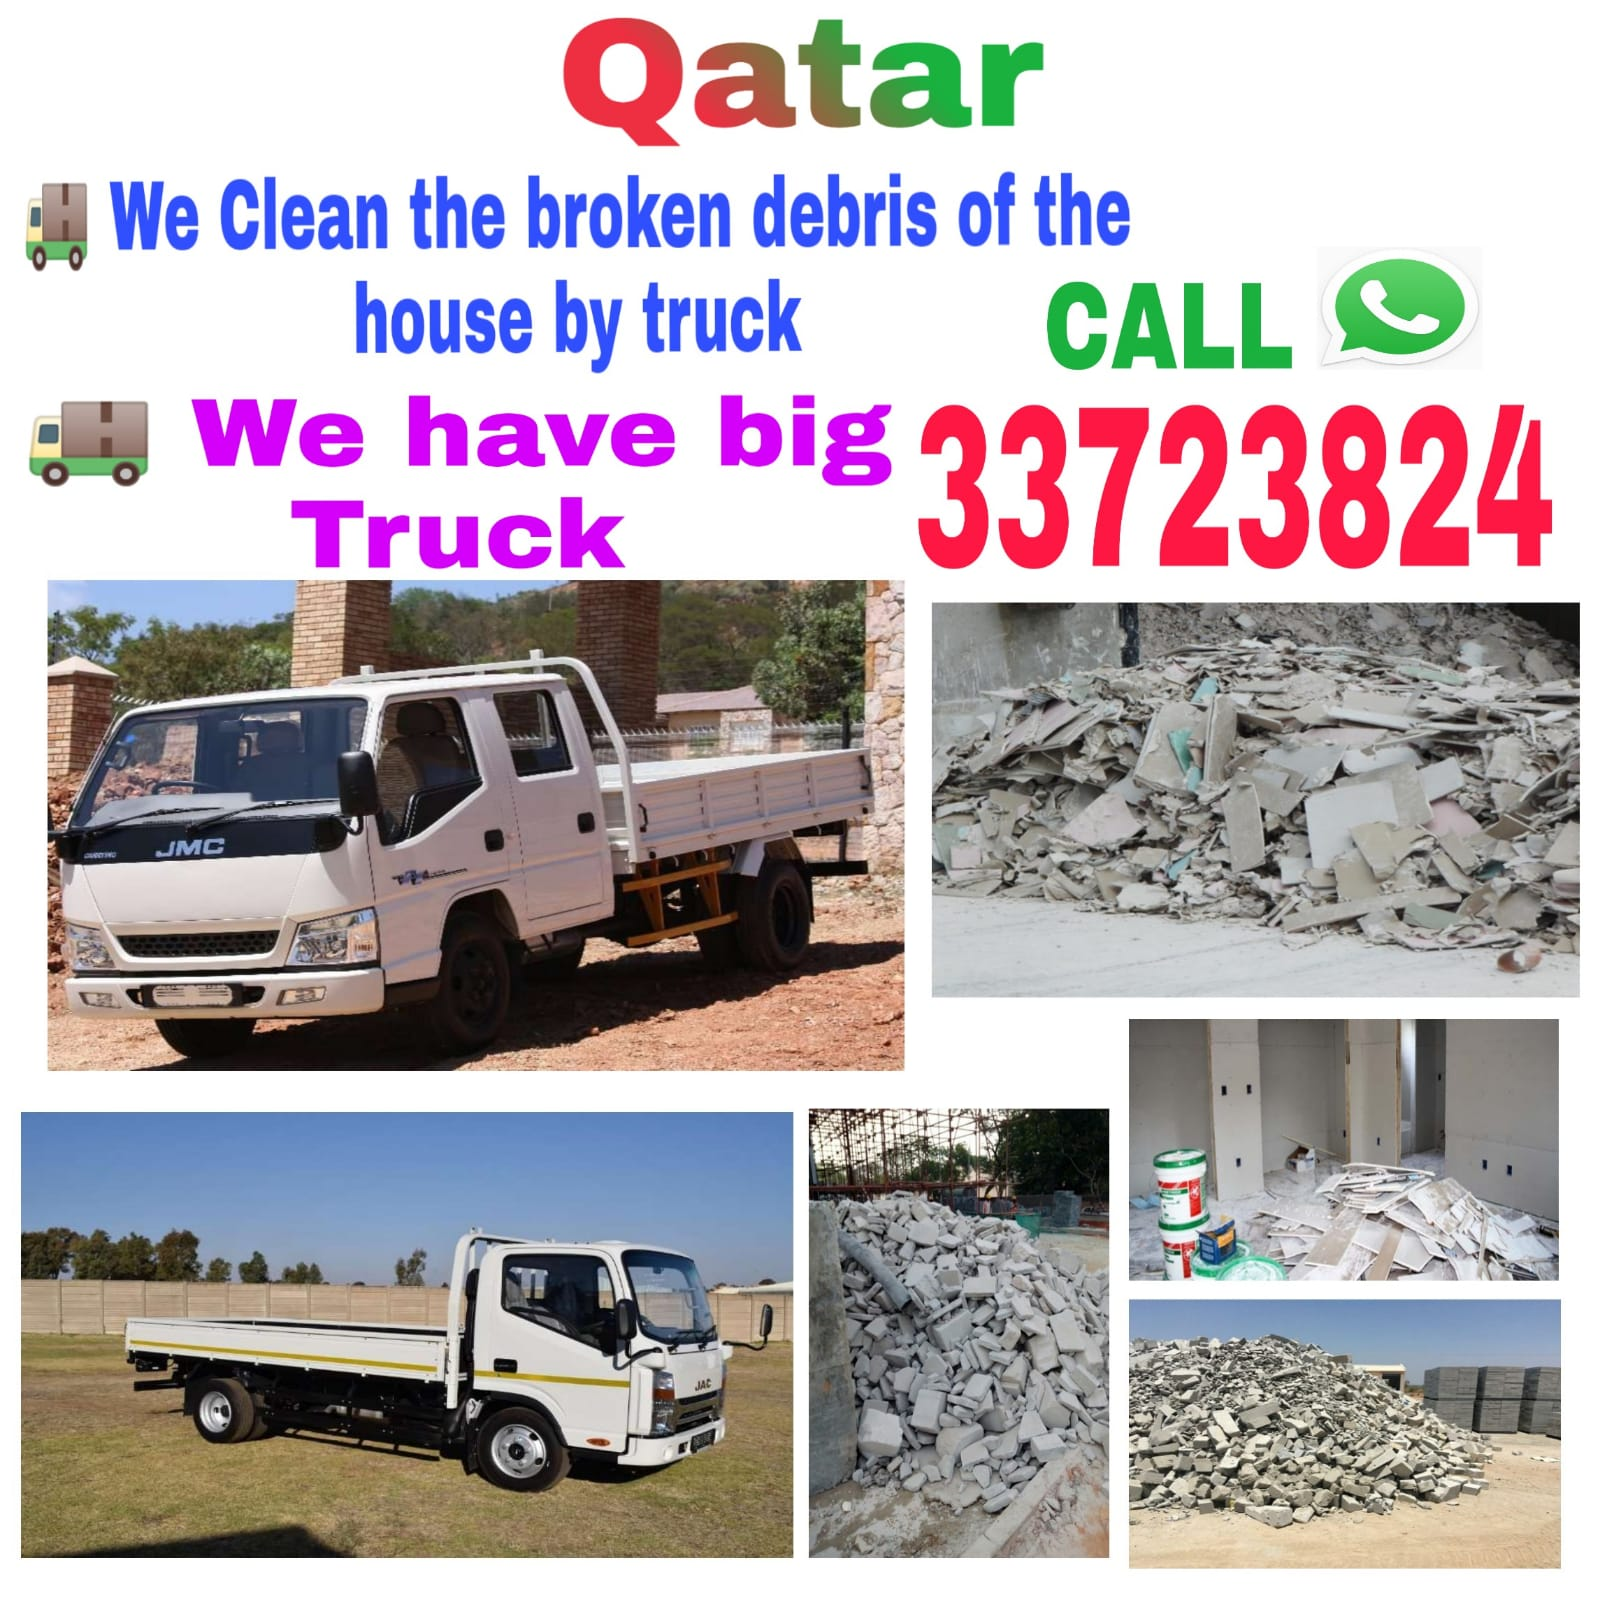 We clean the broken debris of the house by truck